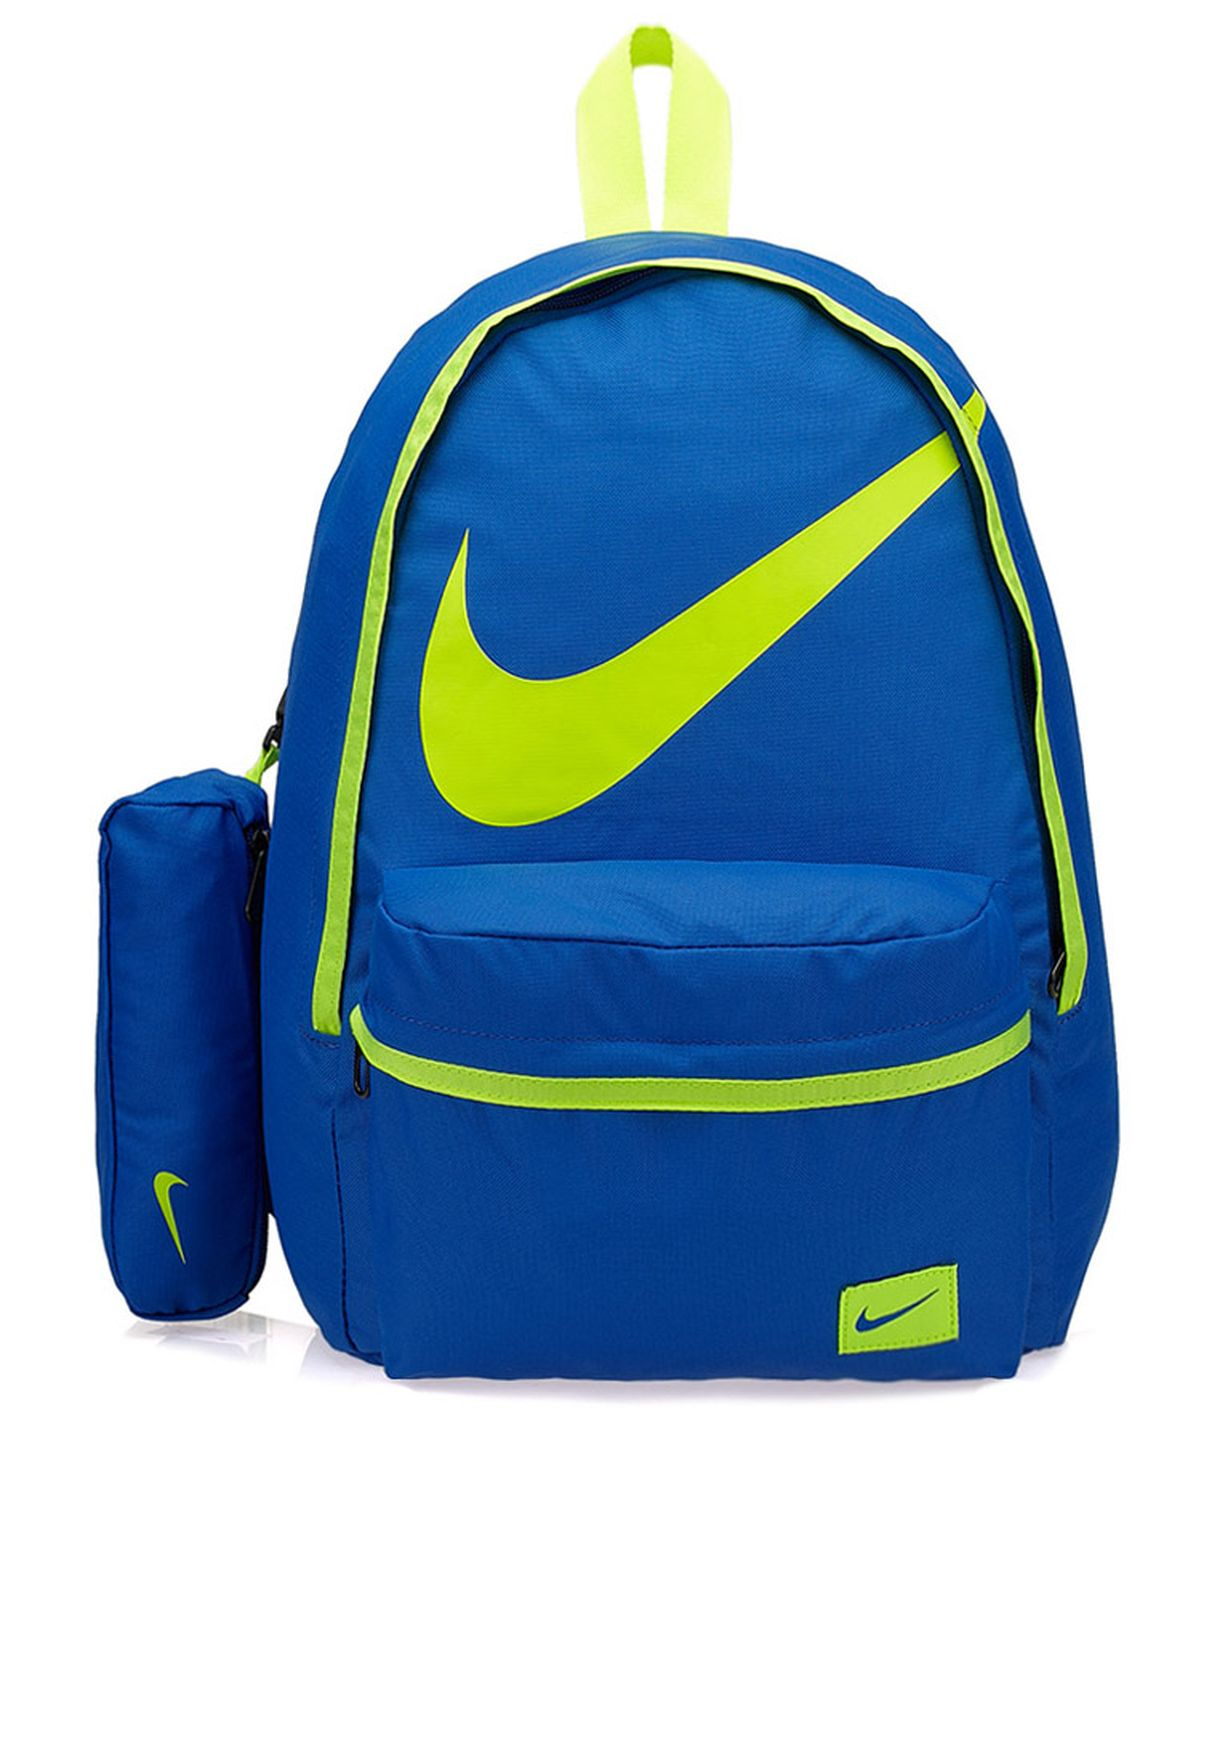 756298b378b4 Shop Nike blue Young Athletes Halfday NEQP-BA4665-474 for Kids in ...